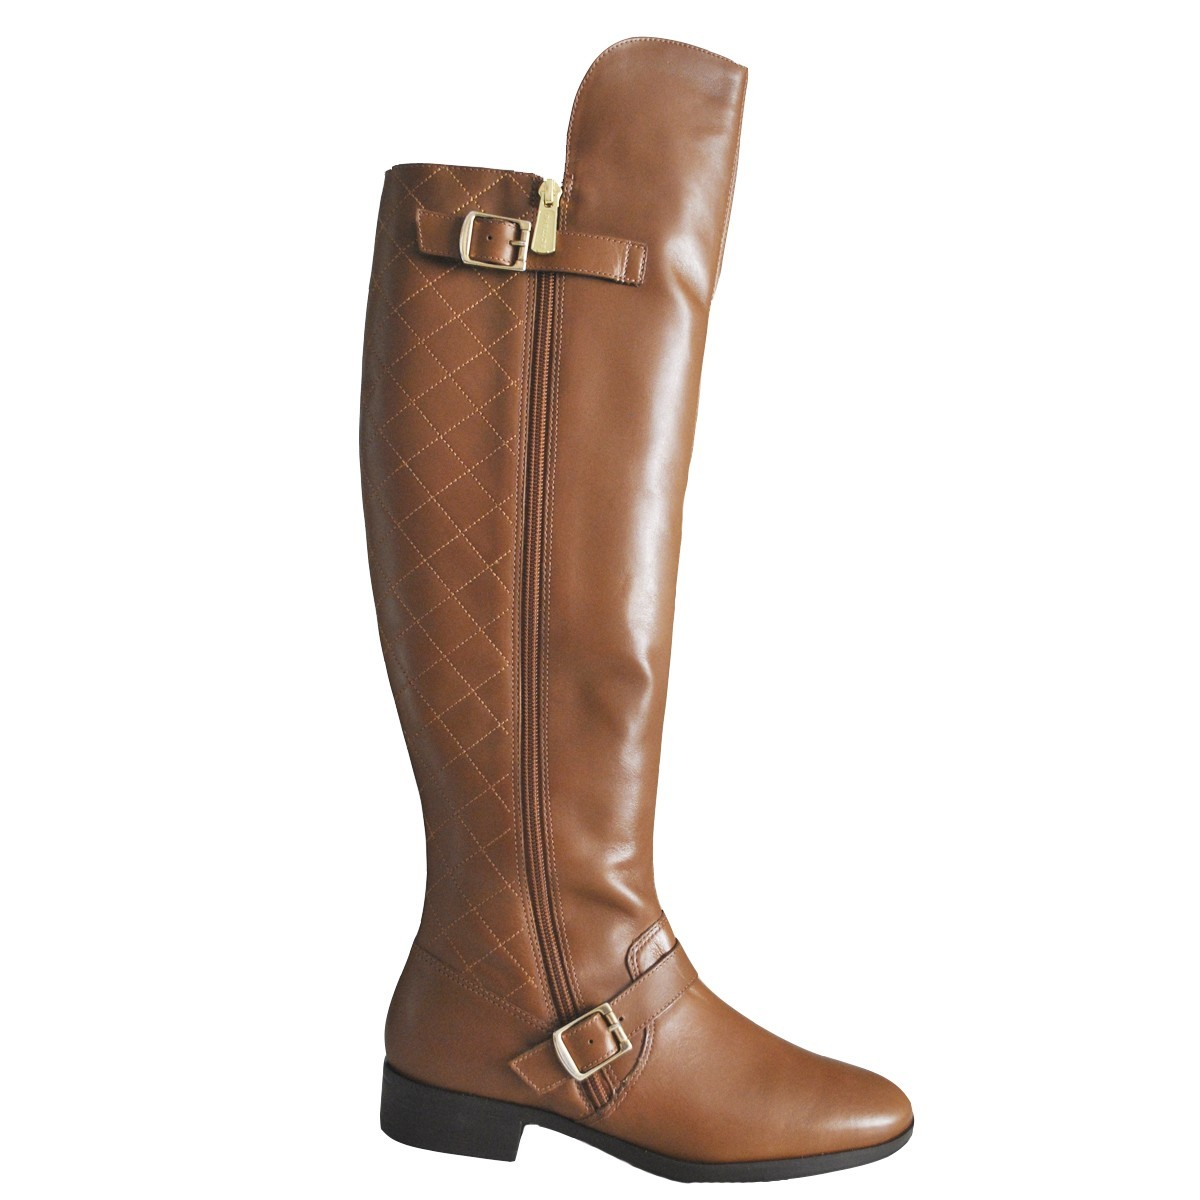 9eab392d0a4 Bizz Store - Bota Montaria Feminina Couro Bottero Over The Knee